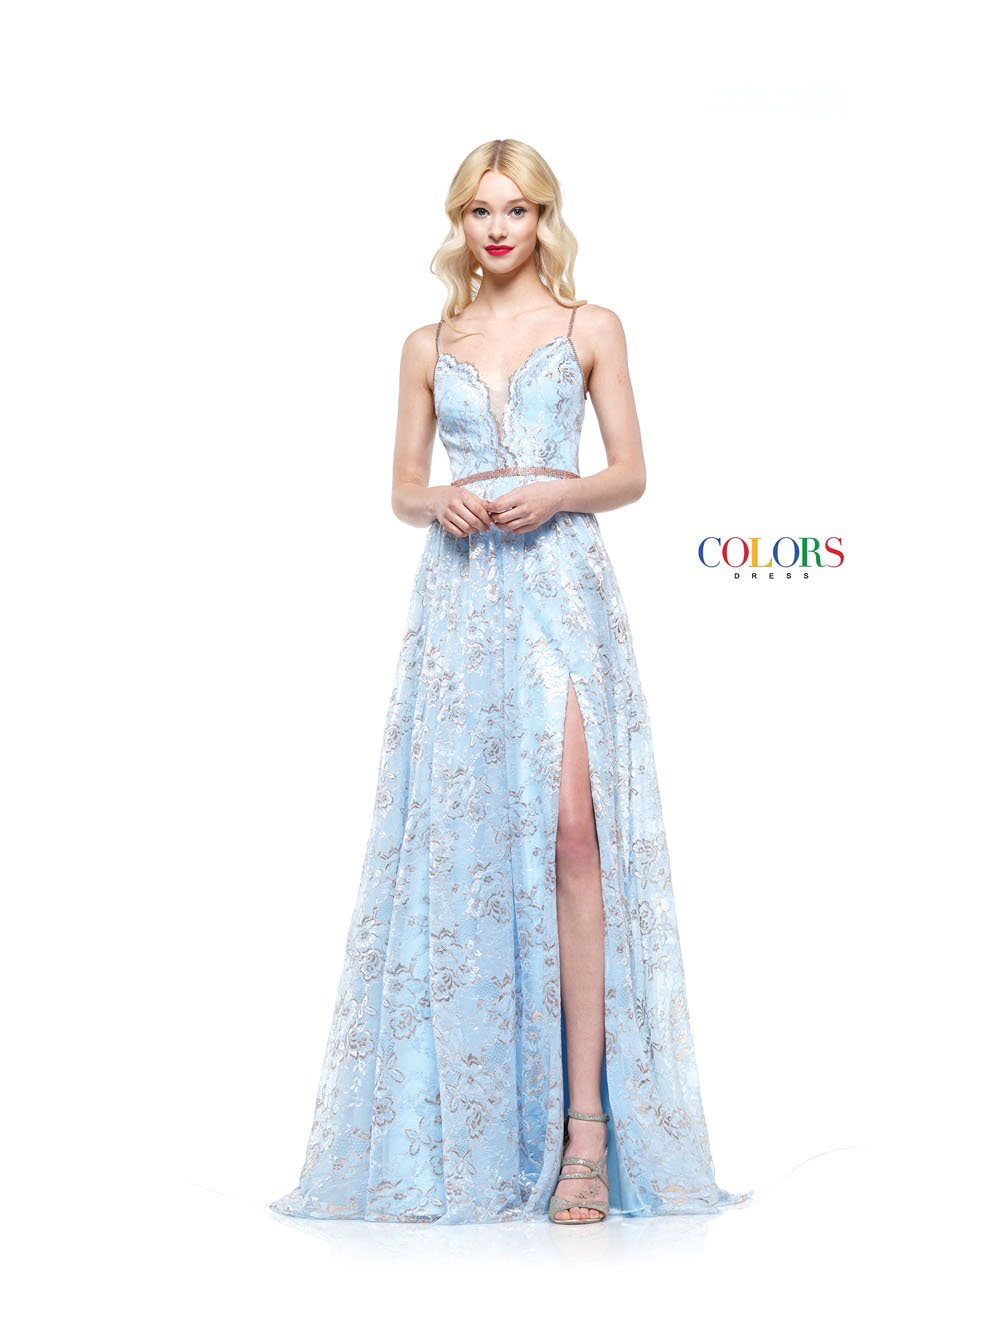 Colors Dress 2186 prom dress images.  Colors 2186 dresses are available in these colors: Mint Blue, Rose Gold, Silver.